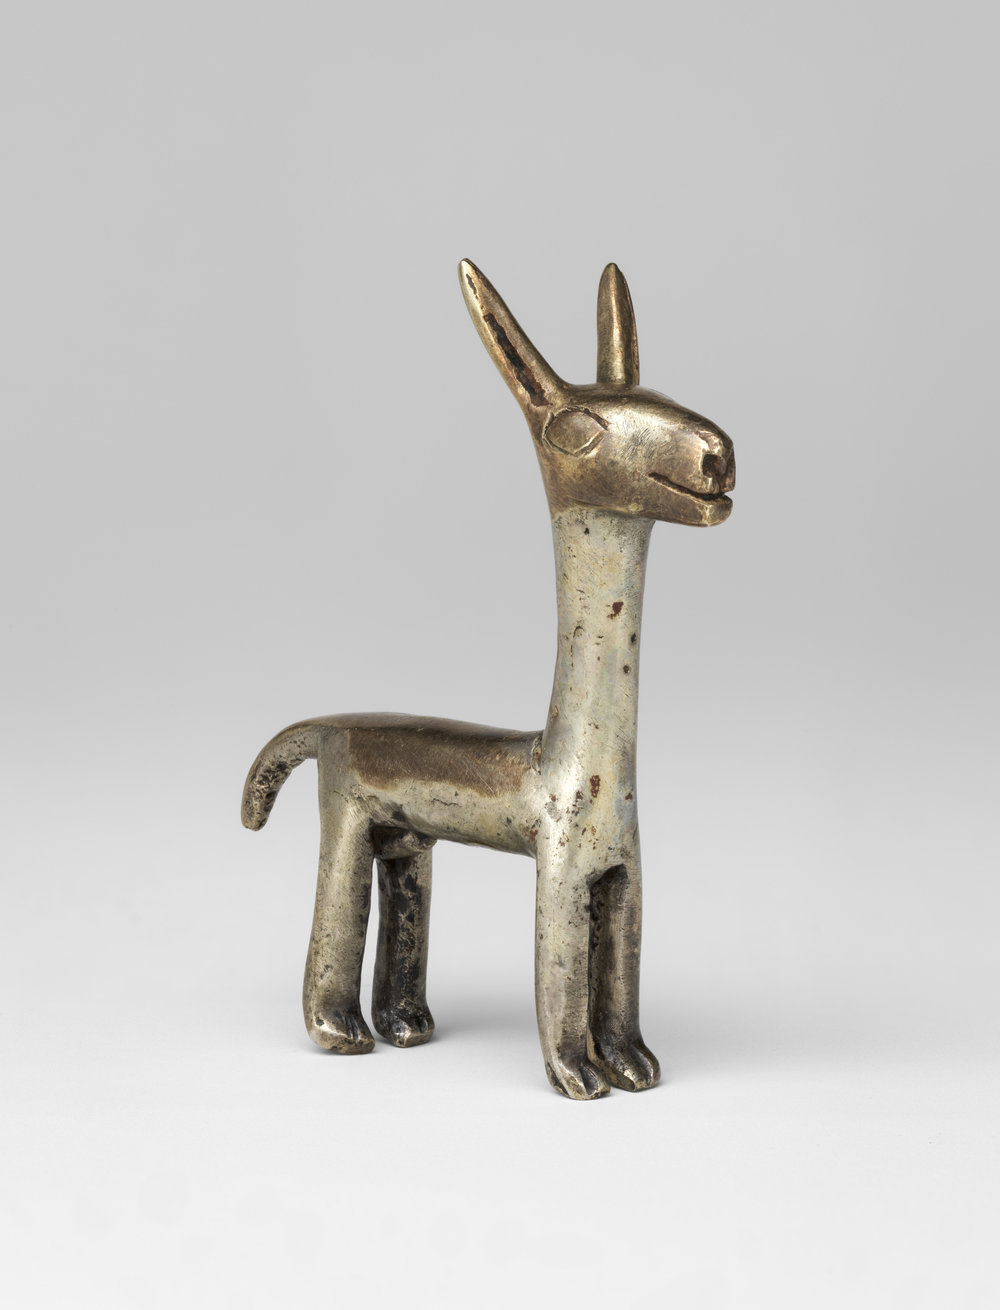 Inca Camelid Figurine, 1400-1533, Alloys of Silver, Copper & Gold  | ©   The Met Museum   |   Creative Commons License CC0 1.0